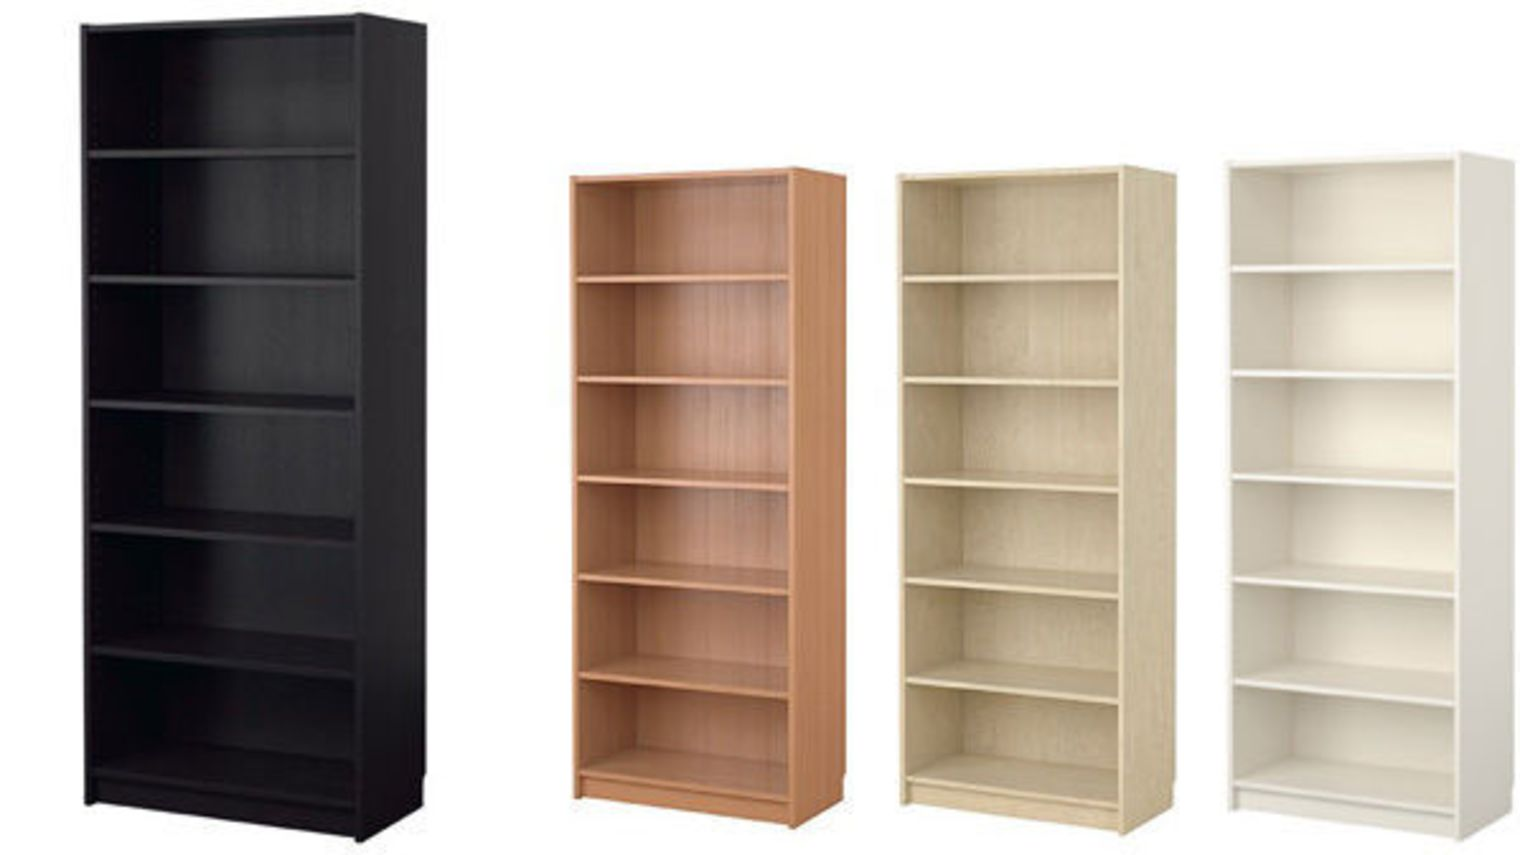 biblioth que pas cher bois 10 id es de d coration int rieure french decor. Black Bedroom Furniture Sets. Home Design Ideas